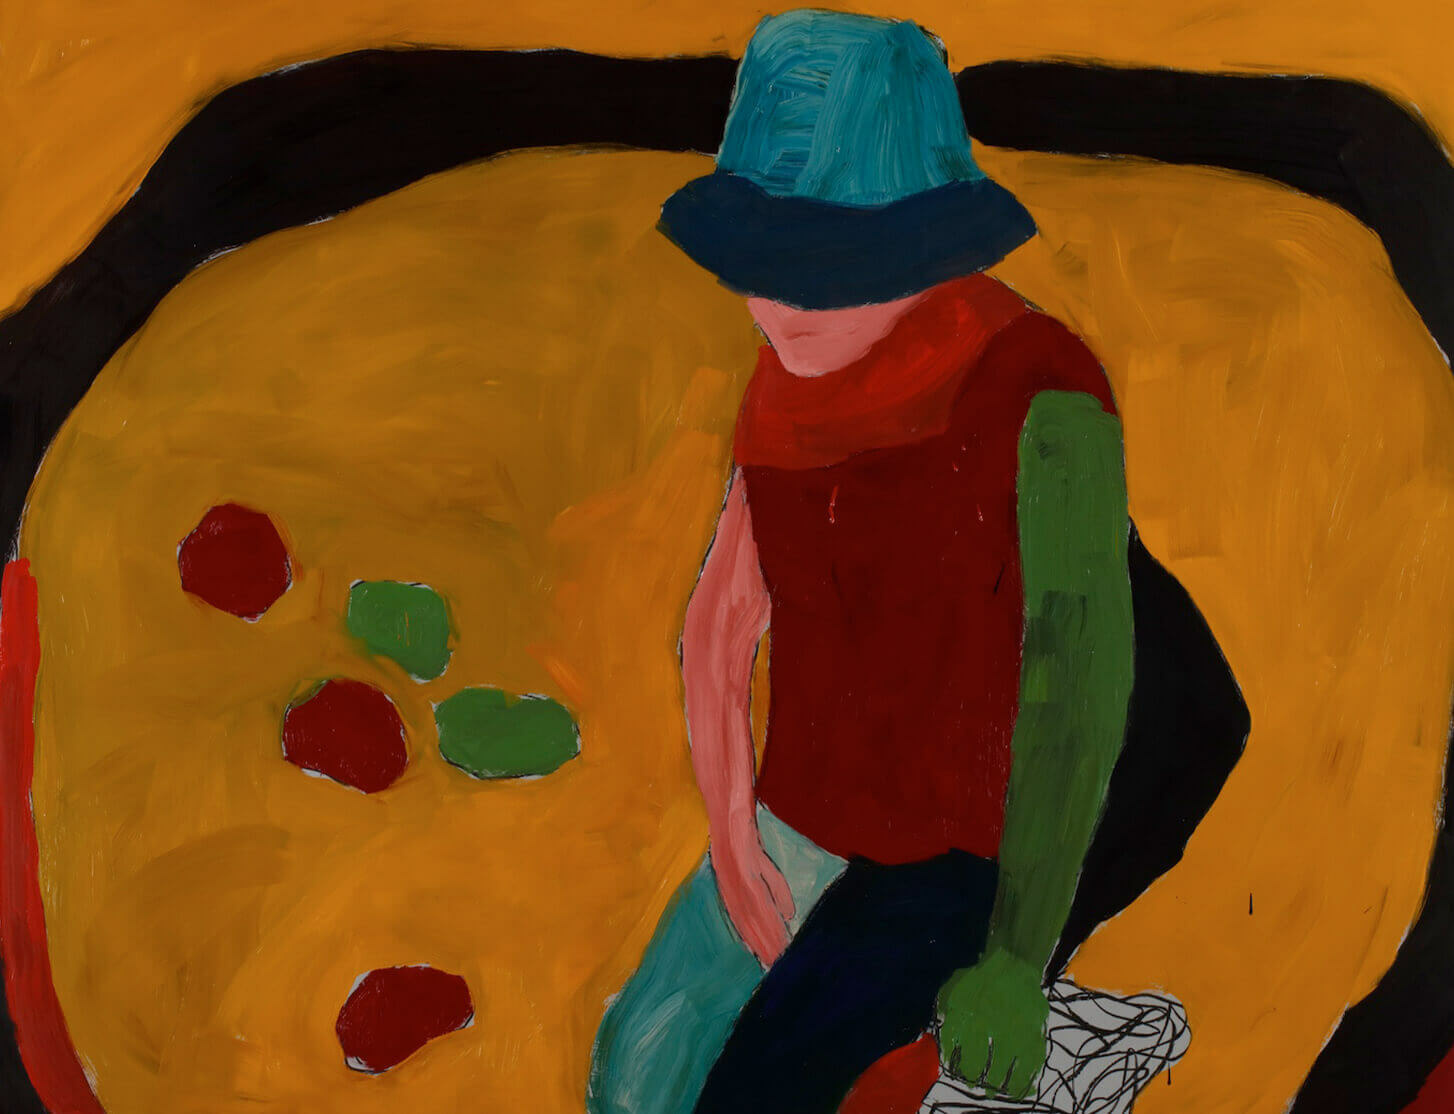 Sean Scully's Figurative Leap - Hyperallergic